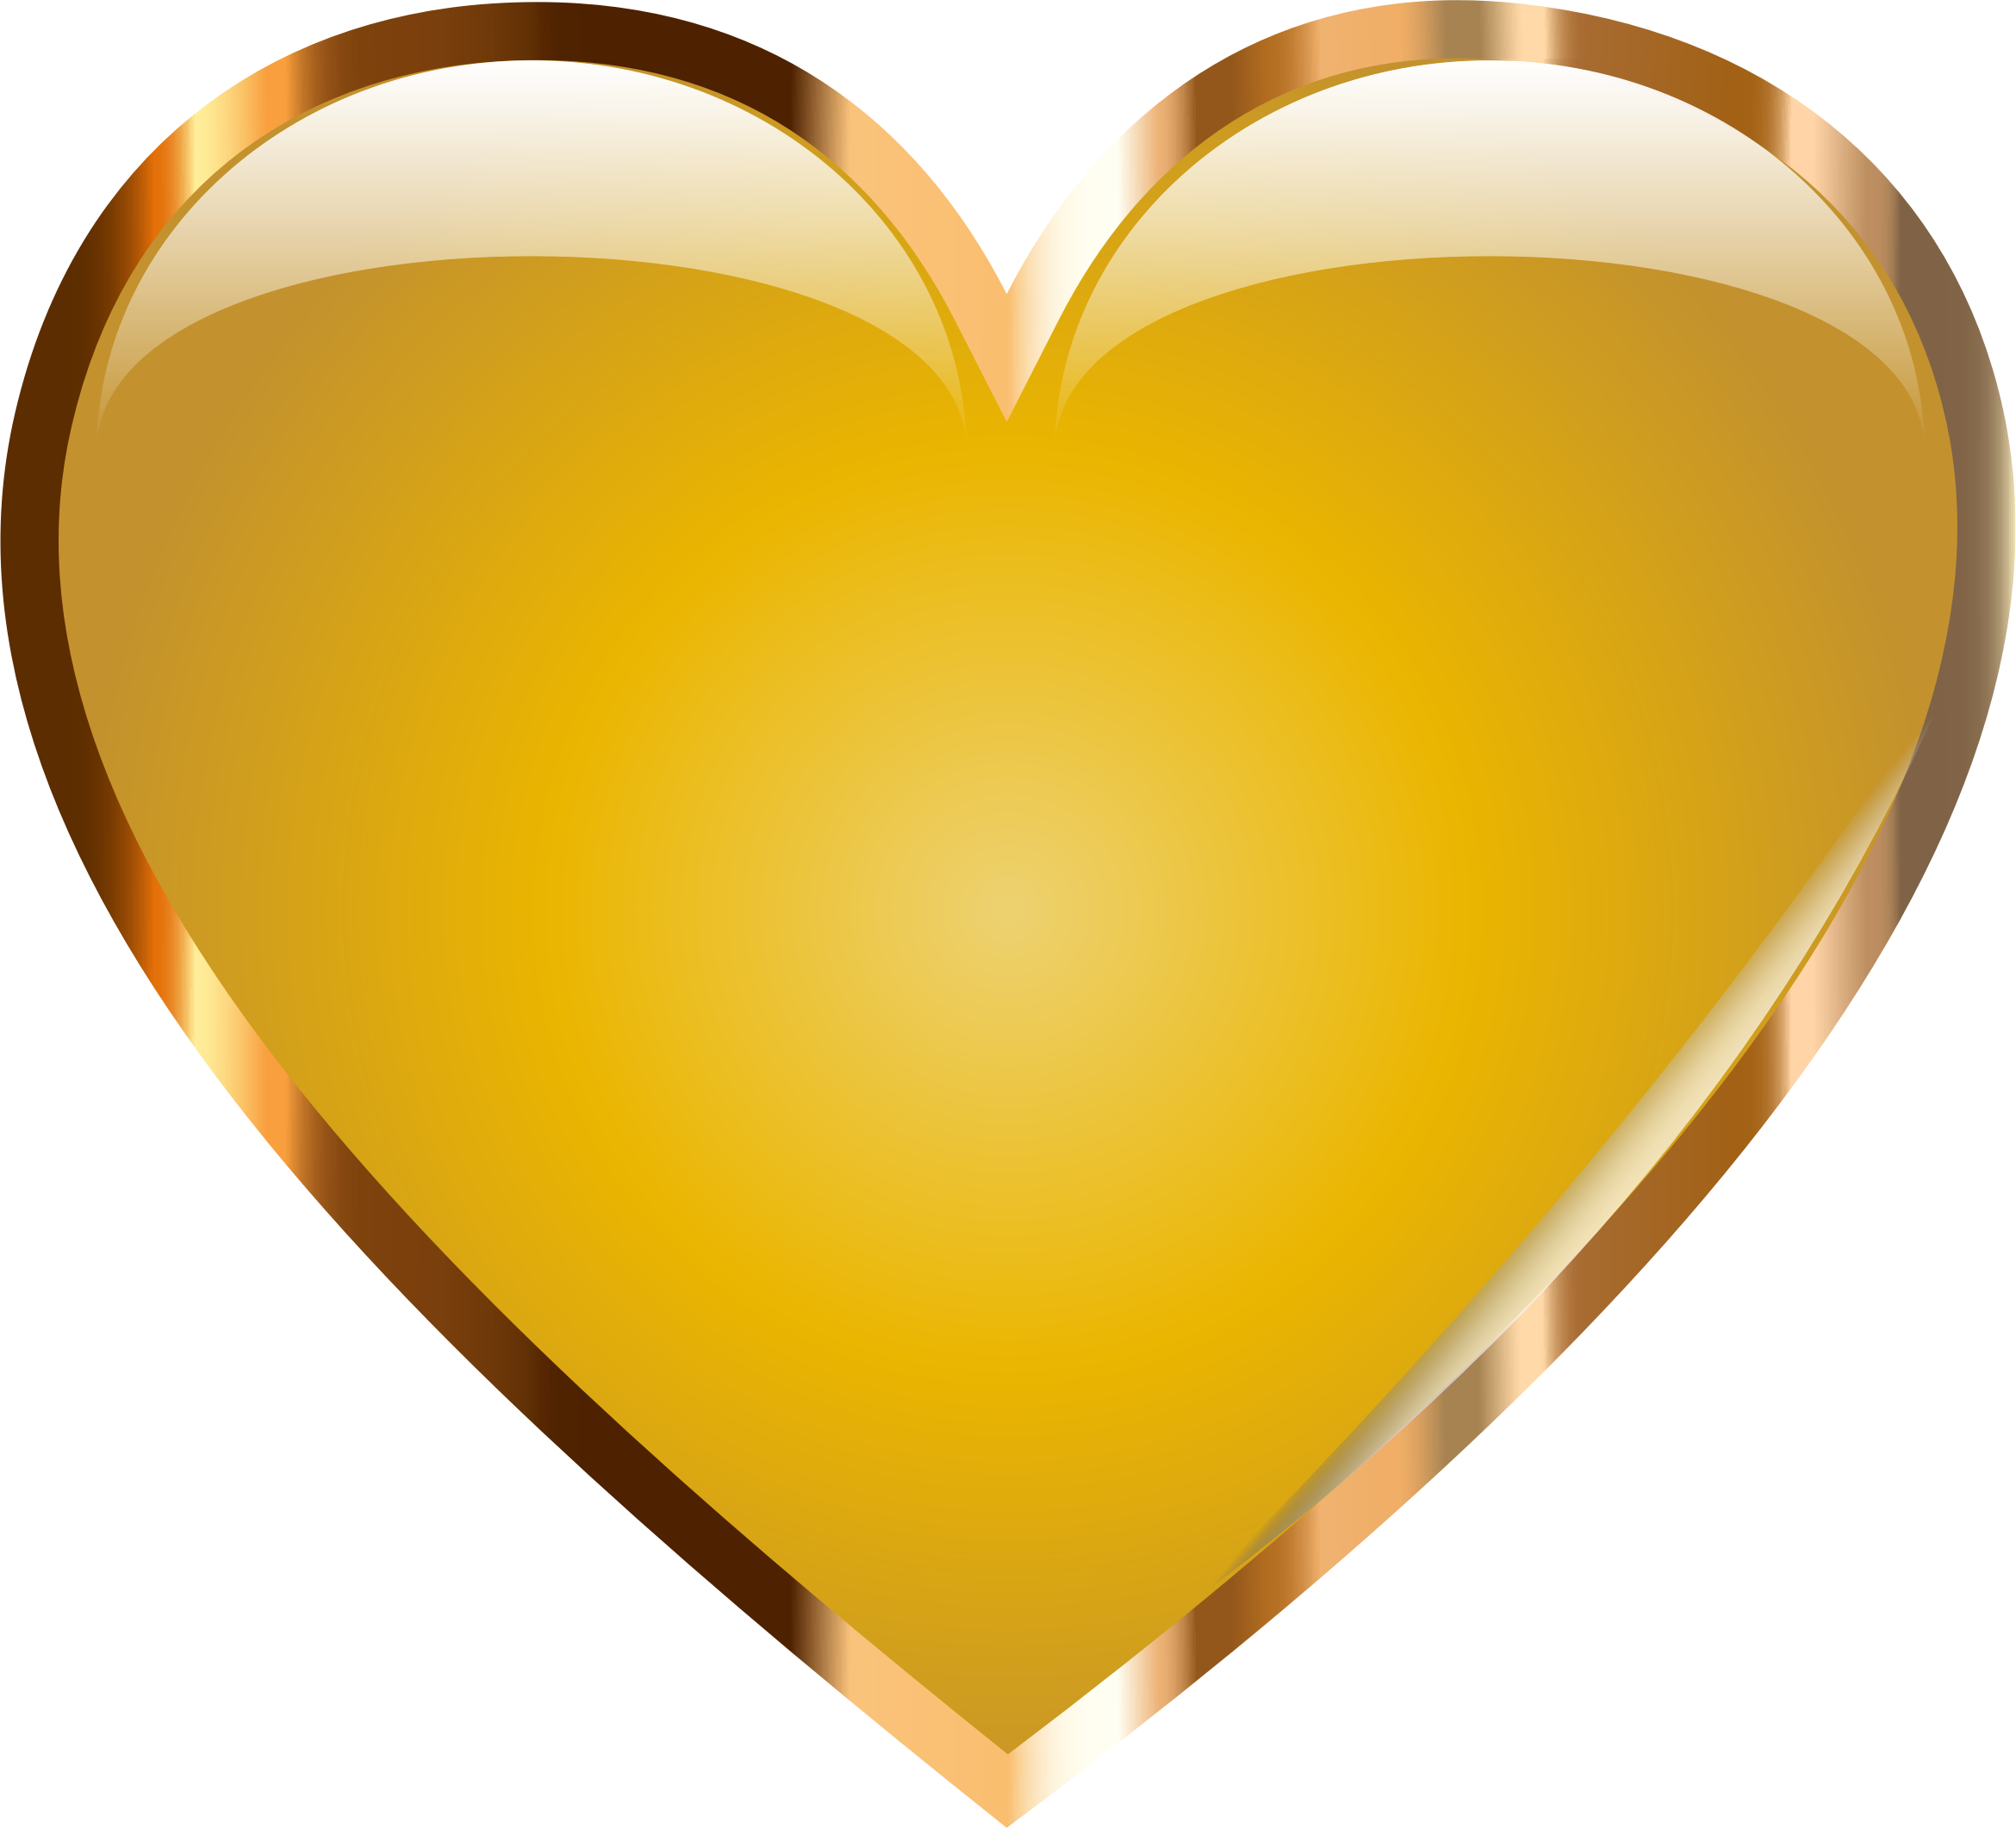 Gold Heart by @GDJ, A gold heart based on the original., on.